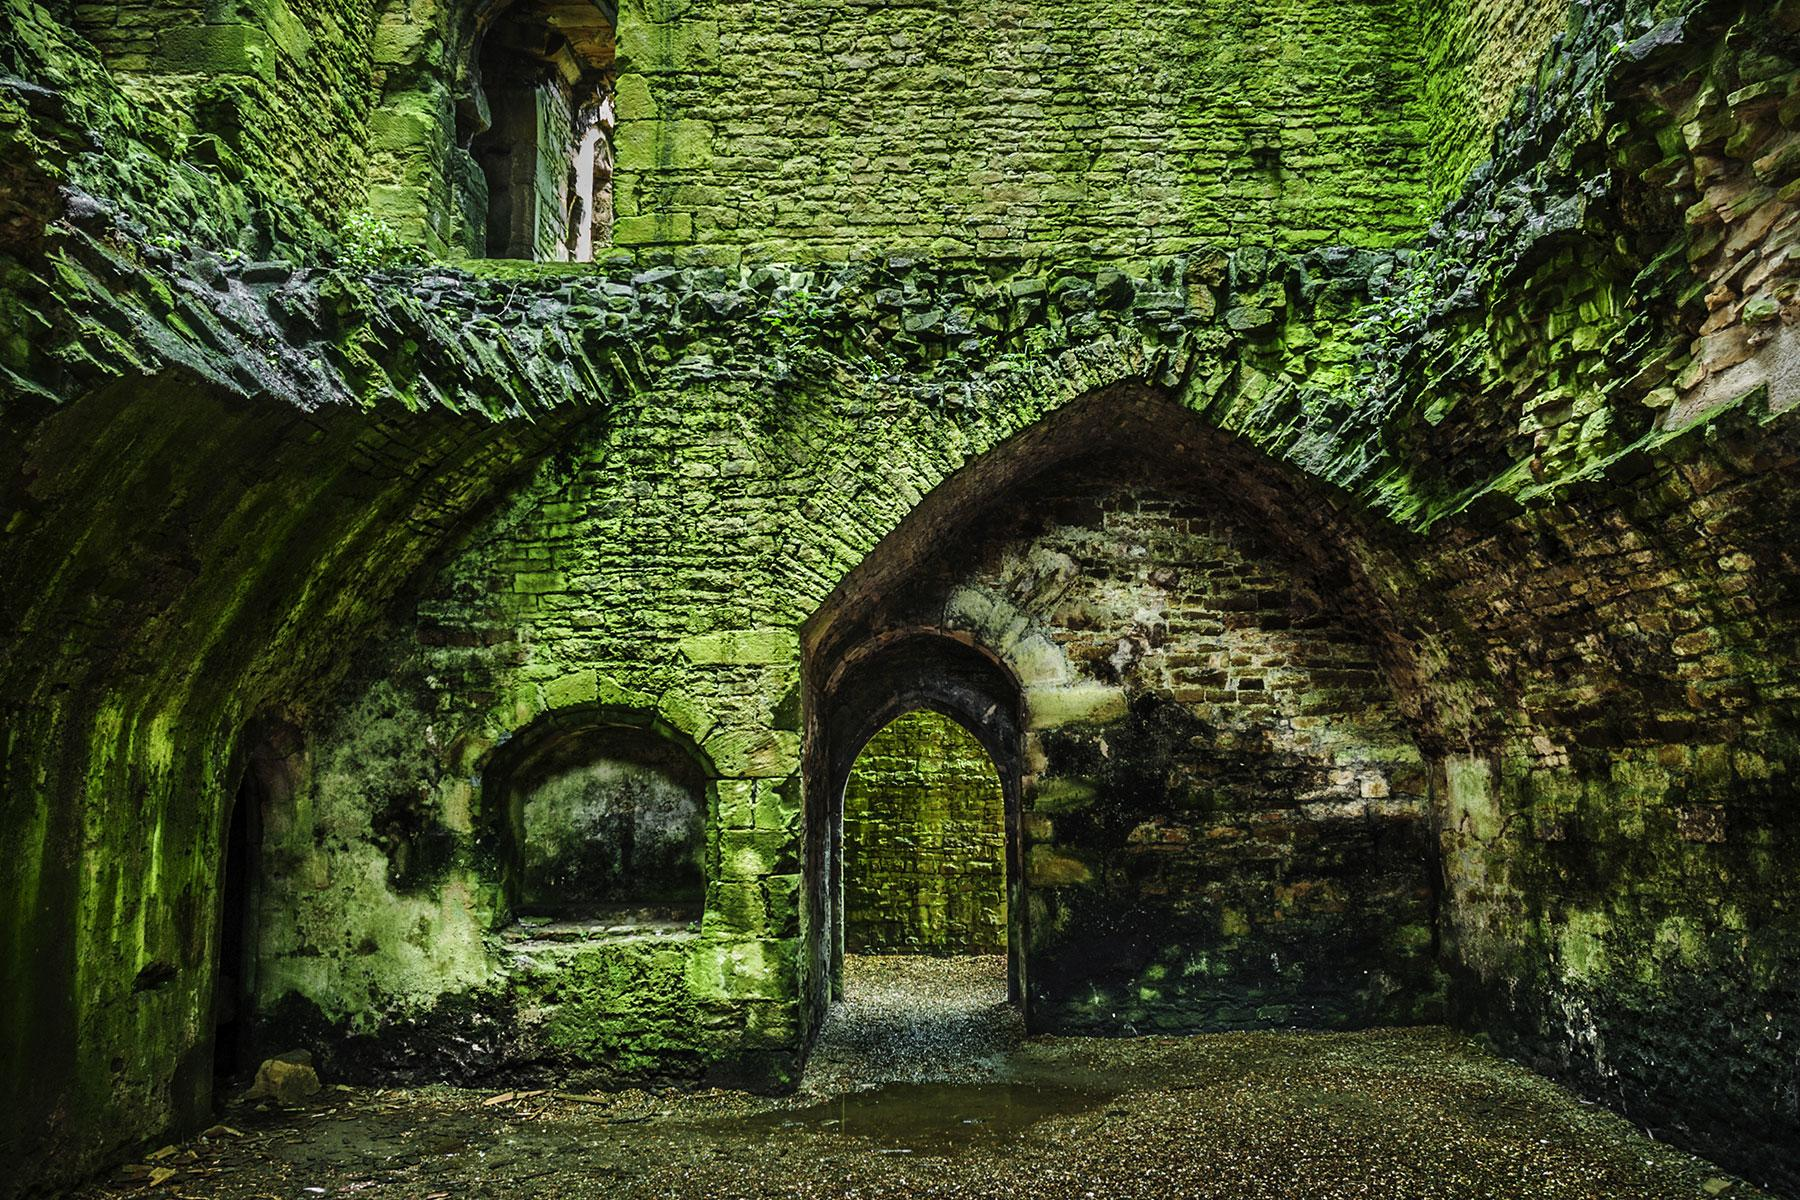 10 Places Where Vampires May Exist Fodors Travel Guide